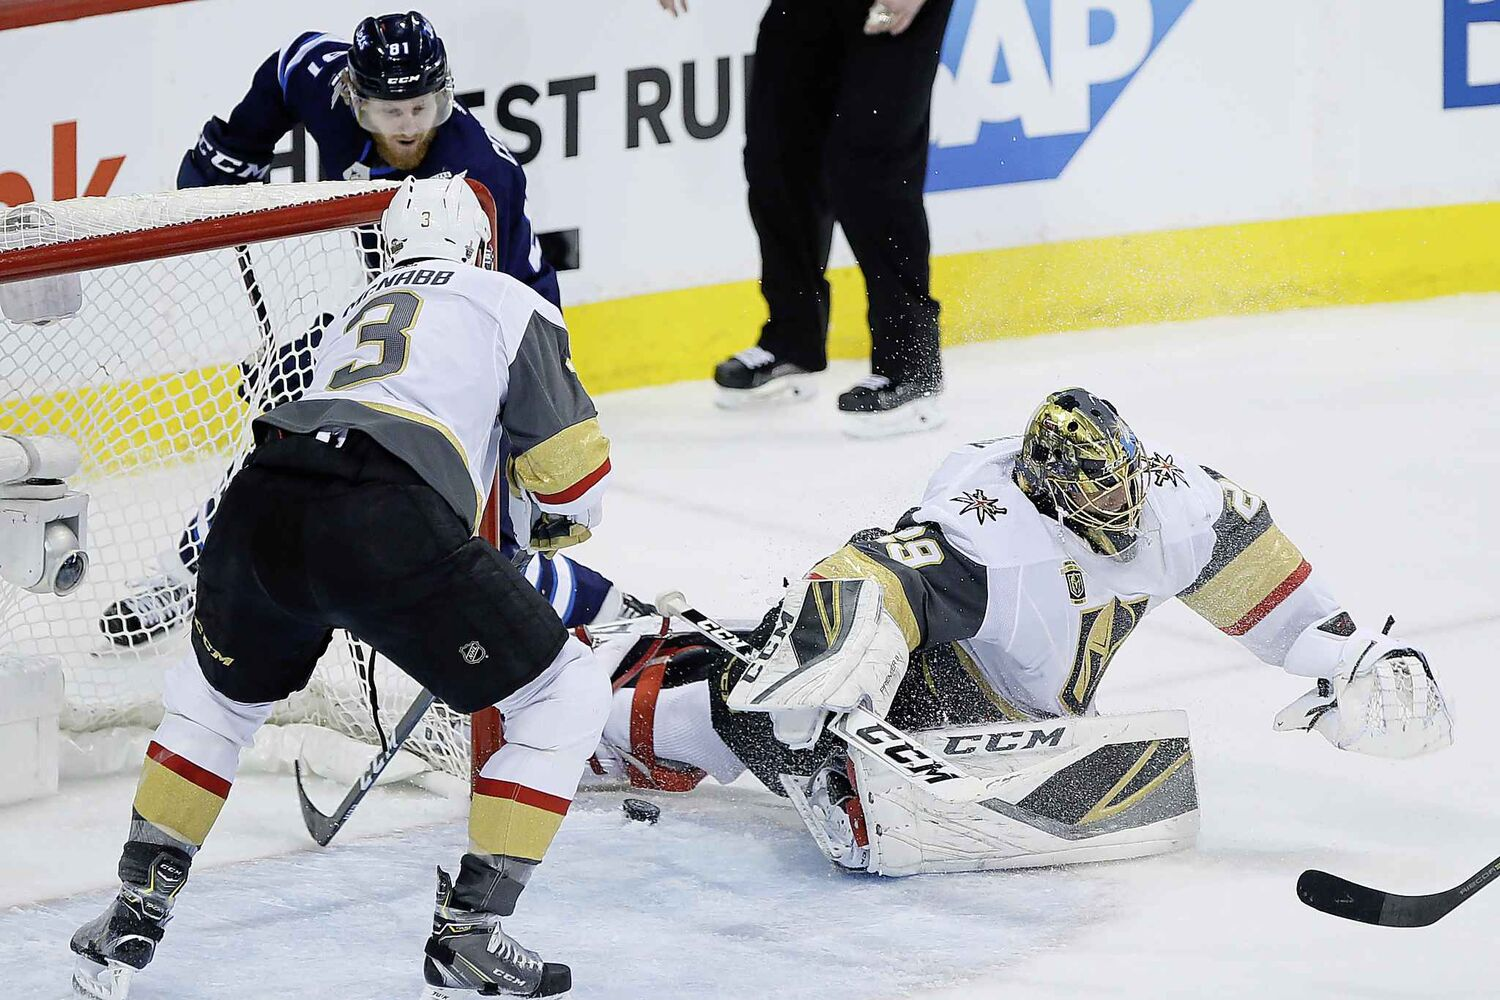 JOHN WOODS / THE CANADIAN PRESS</p><p>Winnipeg Jets' Kyle Connor (81) shot goes through the pads of Vegas Golden Knights goaltender Marc-Andre Fleury (29) but Brayden McNabb (3) clears it during first period of game one action in the NHL Western Conference Final in Winnipeg on Saturday, May 12, 2018.</p>